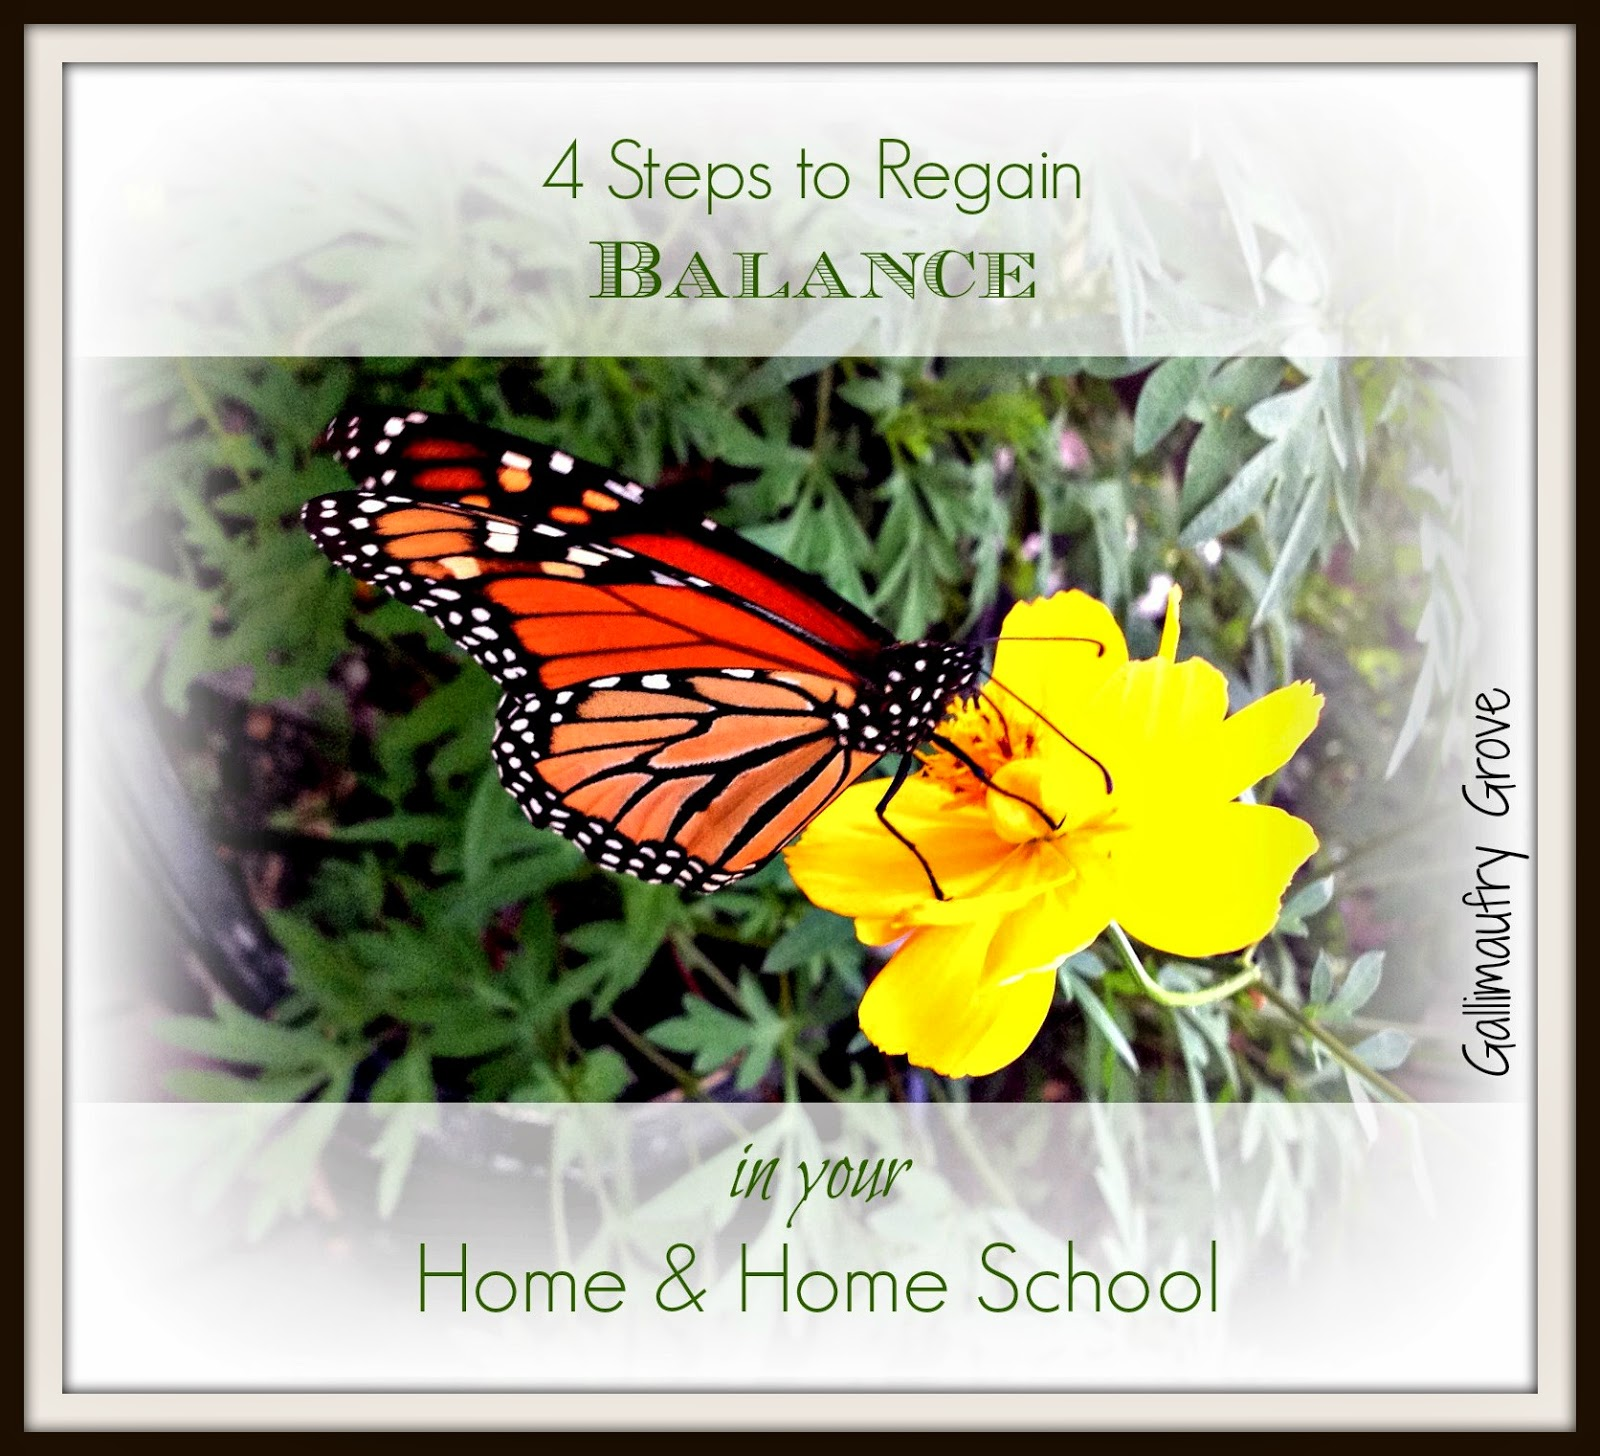 4 Steps to Regain Balance in your Home & Homeschool @hsbapost